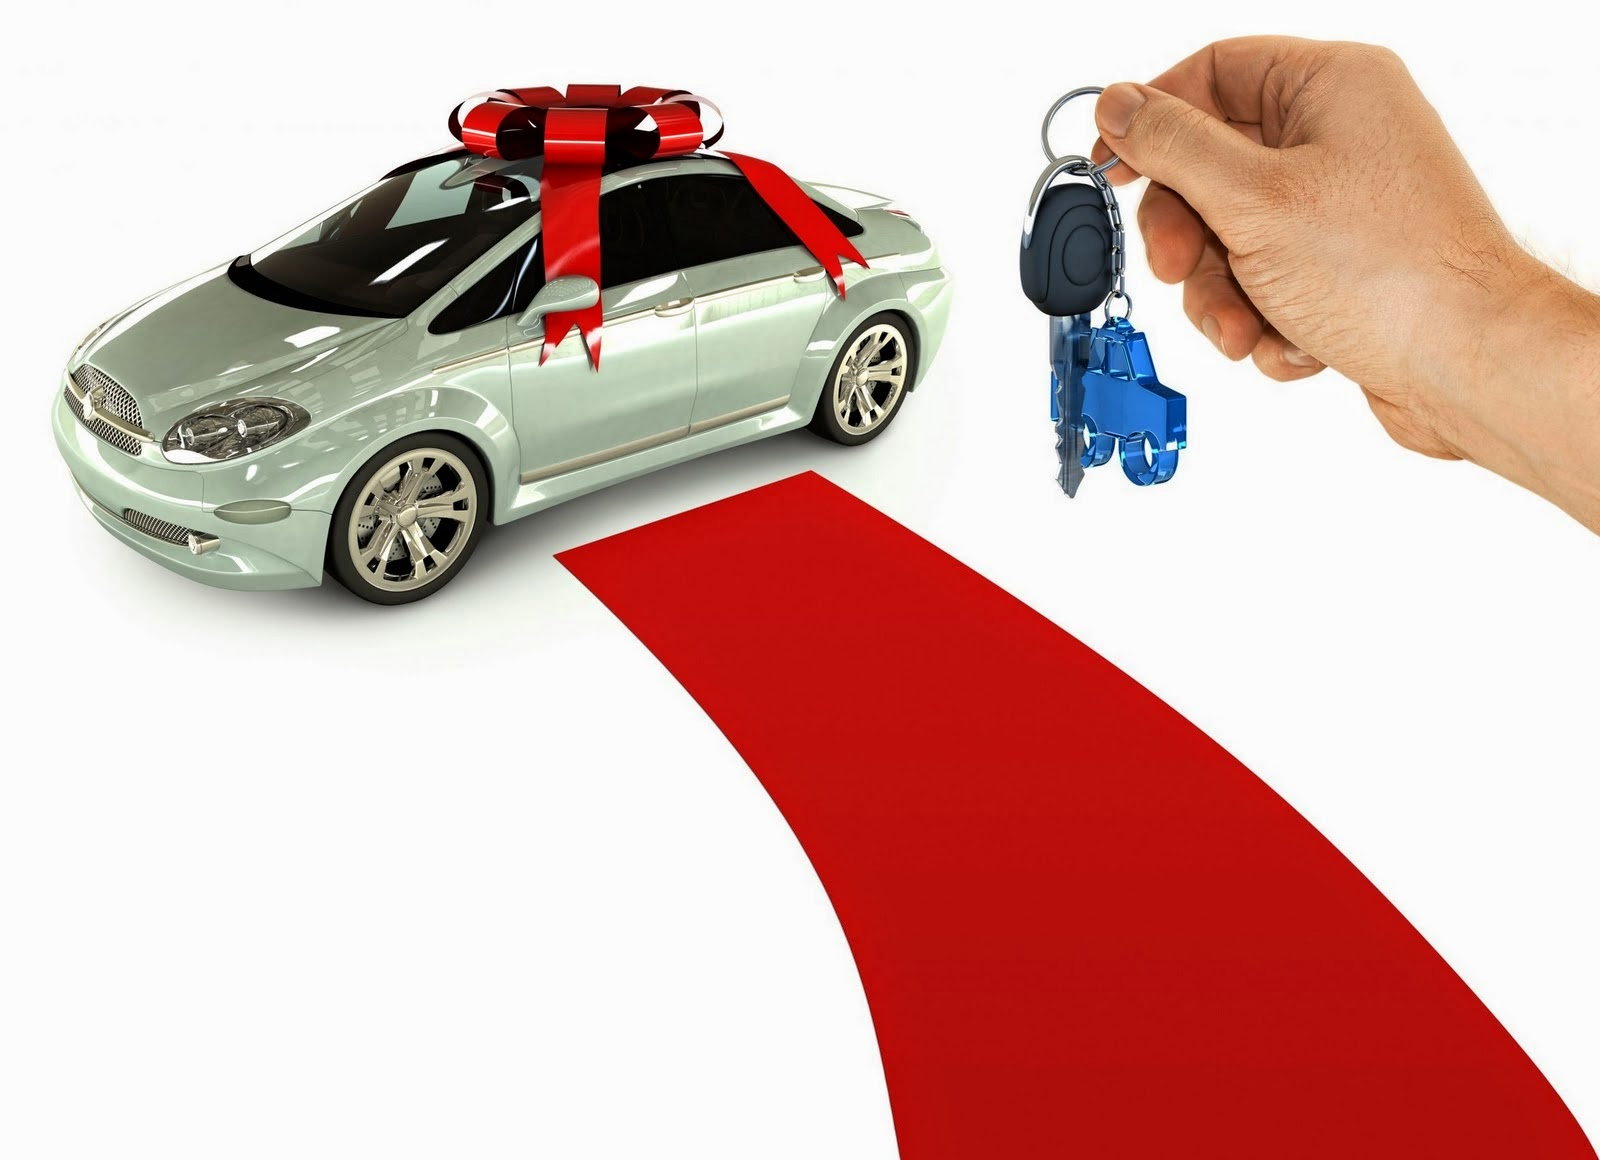 Car Dealers Fir Bad Credit